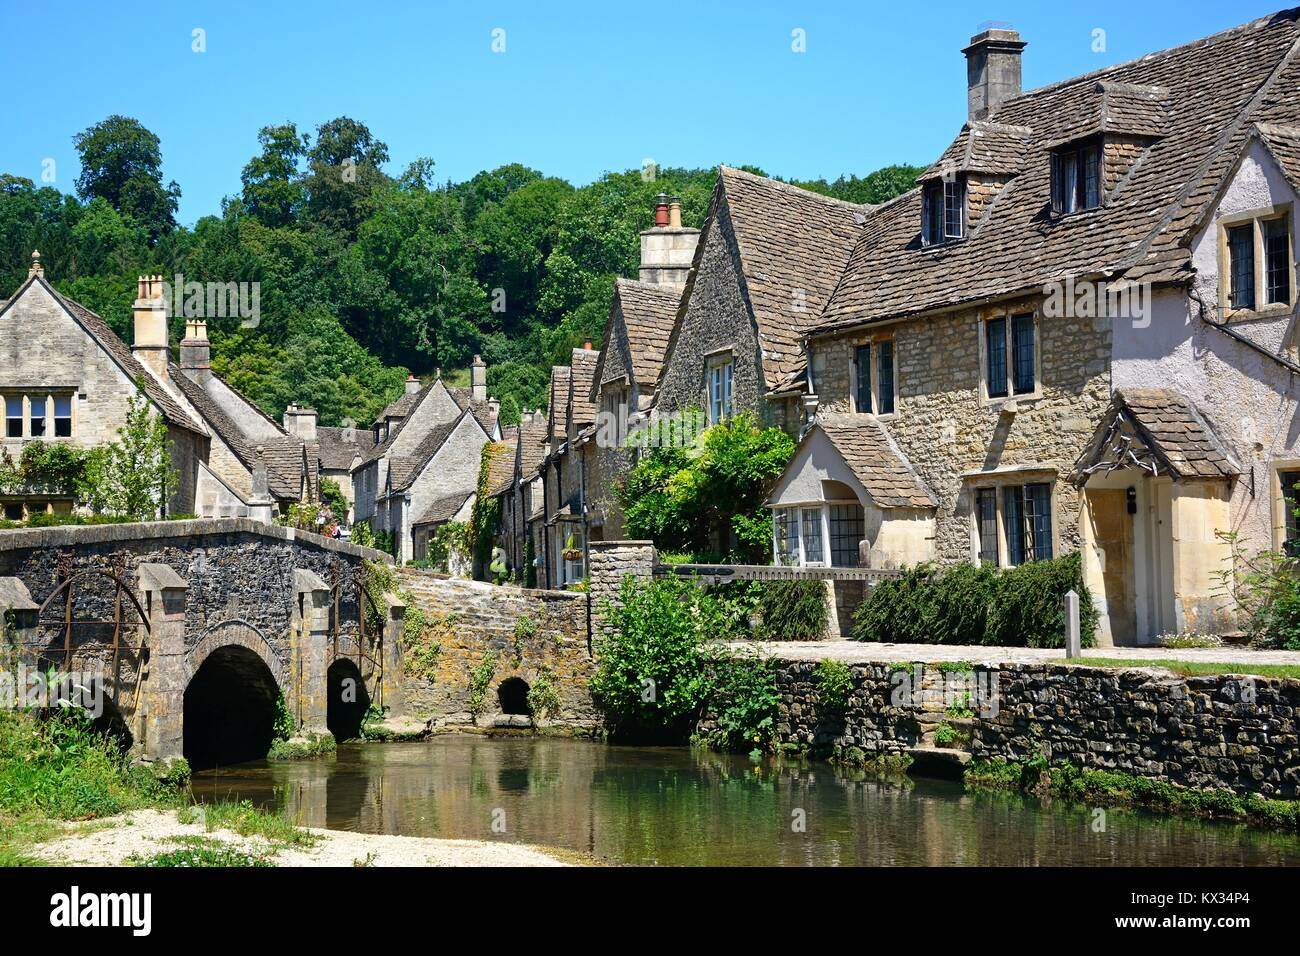 Stone bridge over the river Bybrook with cottages to the rear, Castle Combe, Wiltshire, England, UK, Western Europe. - Stock Image